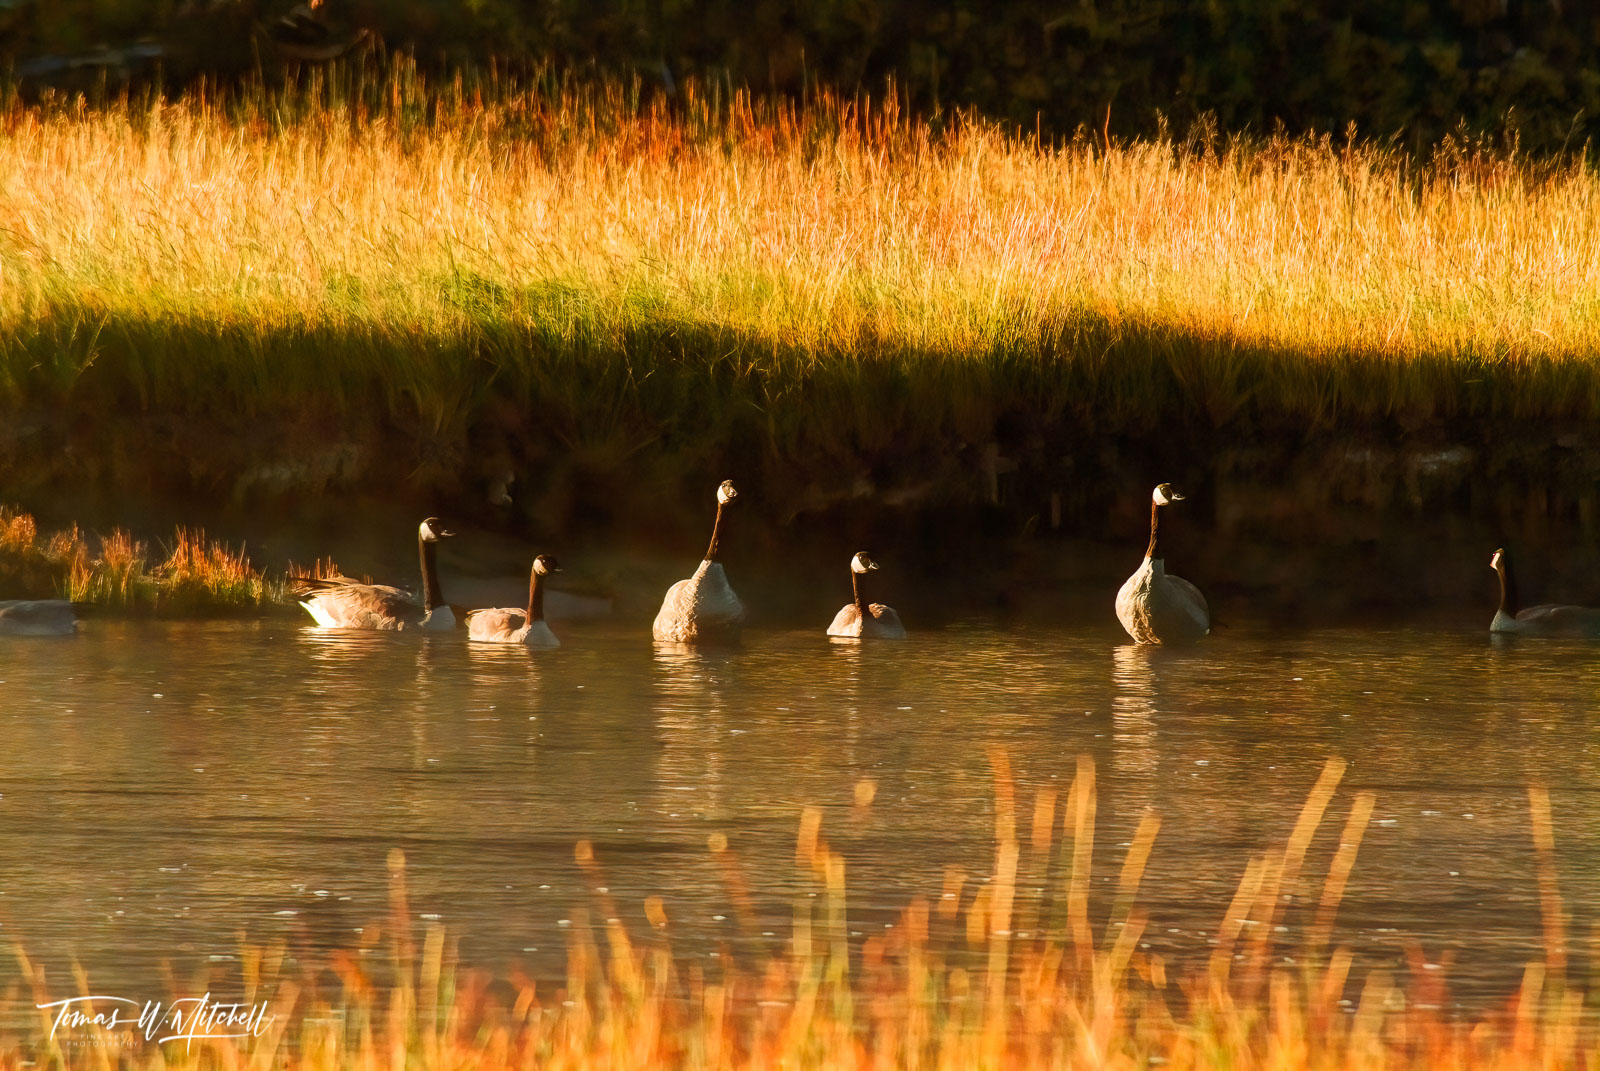 limited edition, fine art, prints, yellowstone national park, goose, morning, geese, grase, yellow, sun, photograph, madison river, photo